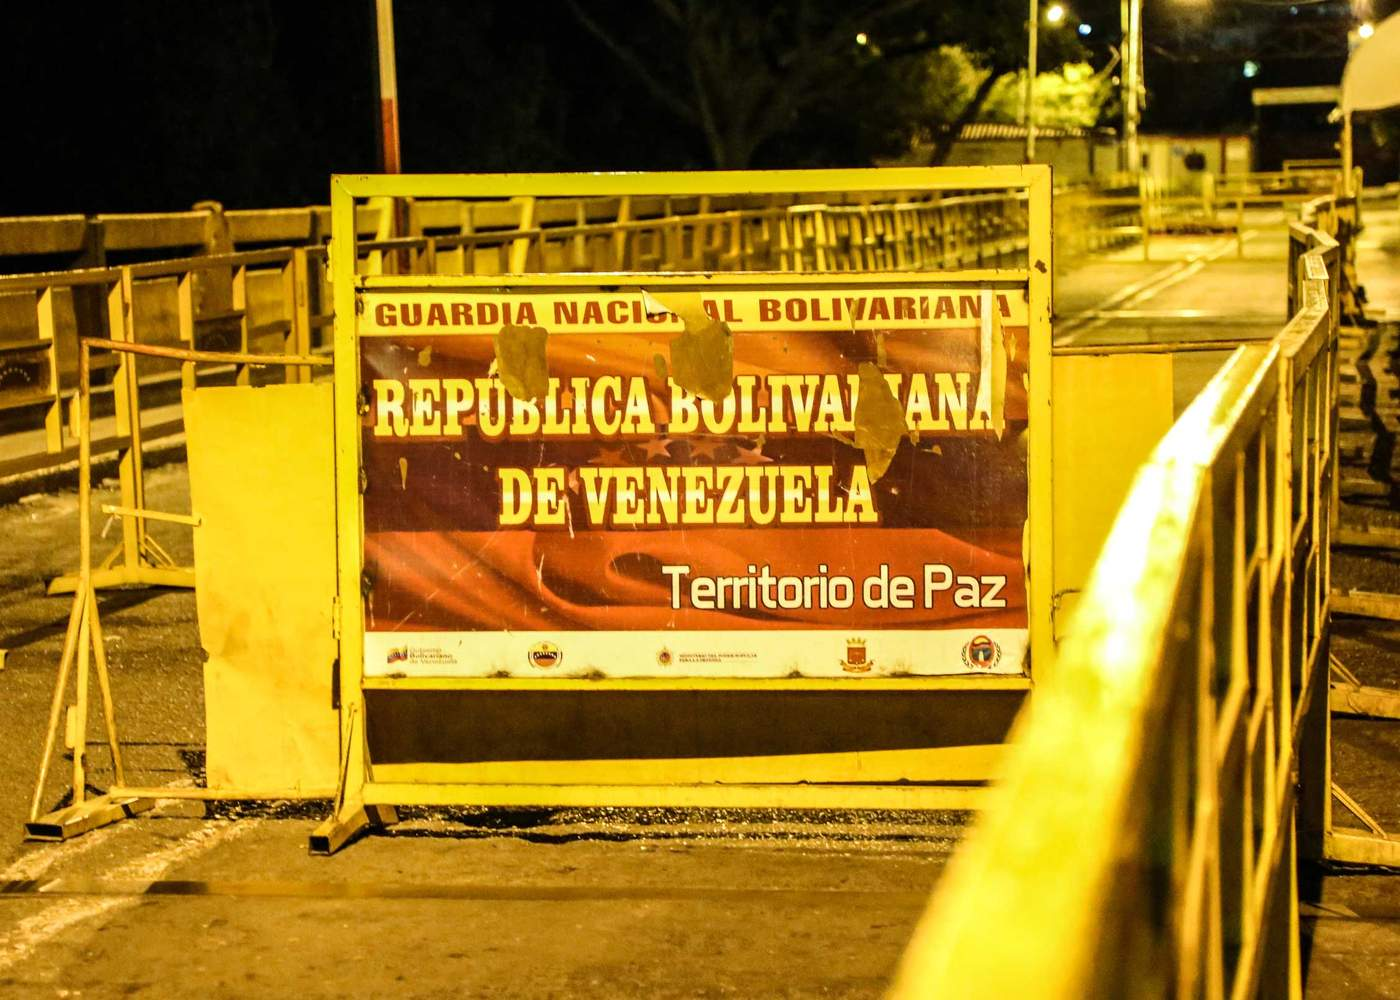 """The sign reads """"Territorio de Paz"""" or Territory of Peace."""